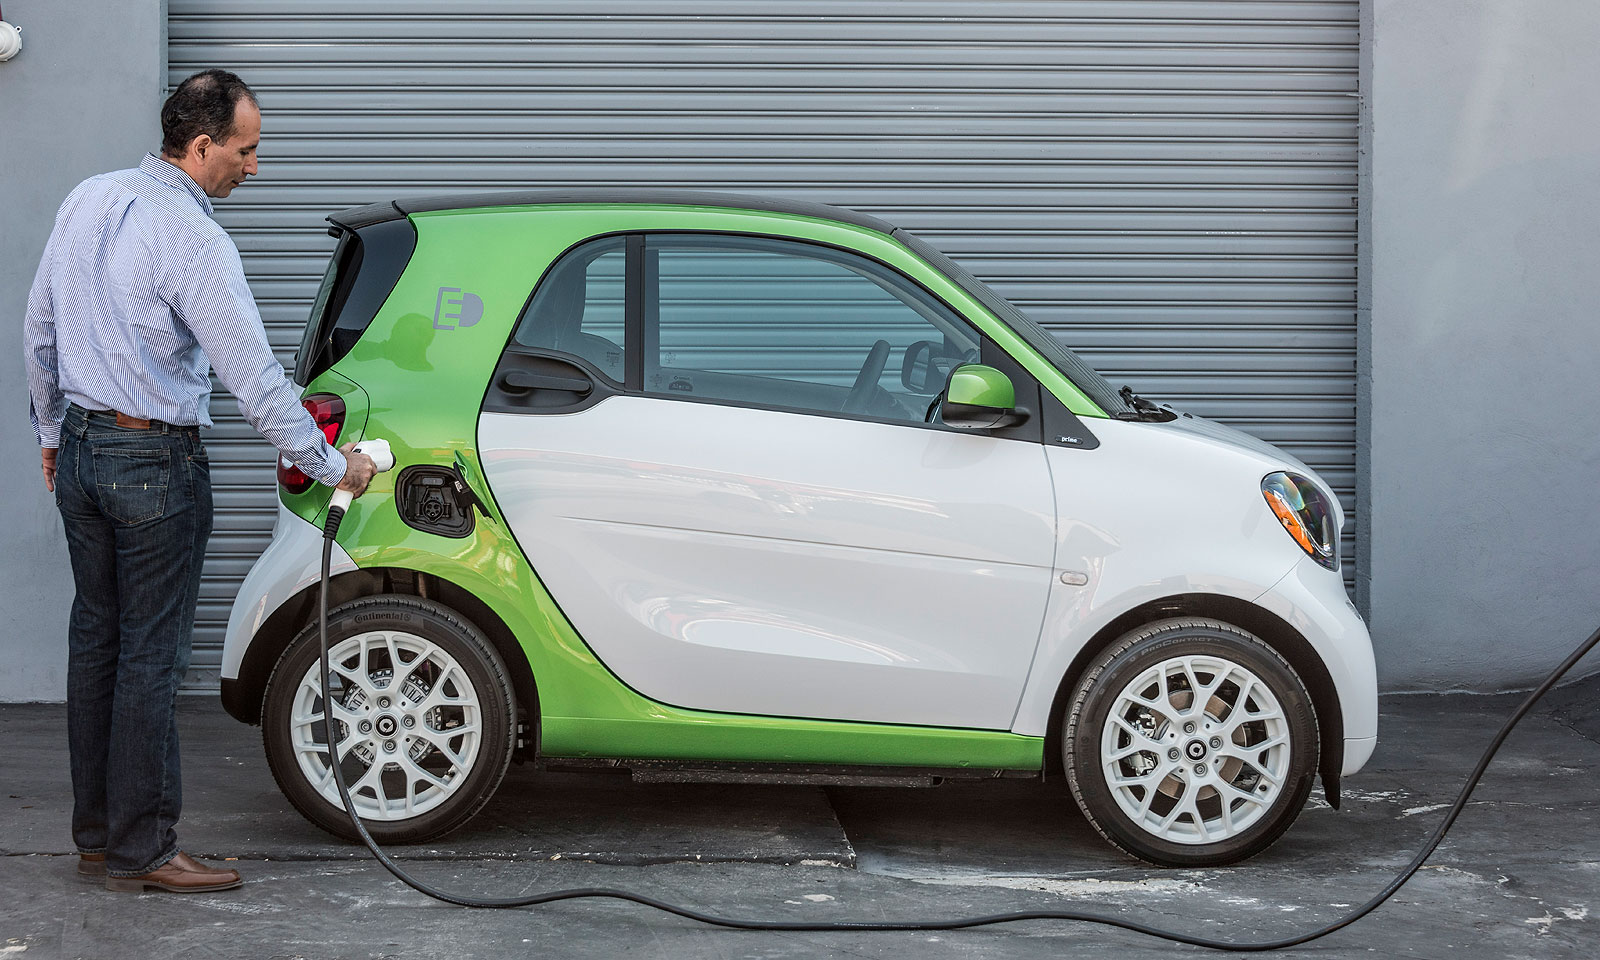 Daimler Ag Is Dropping S Of Gasoline Ed Smart Cars In The U And Canada This Year To Focus On Ing Electric Smarts Only